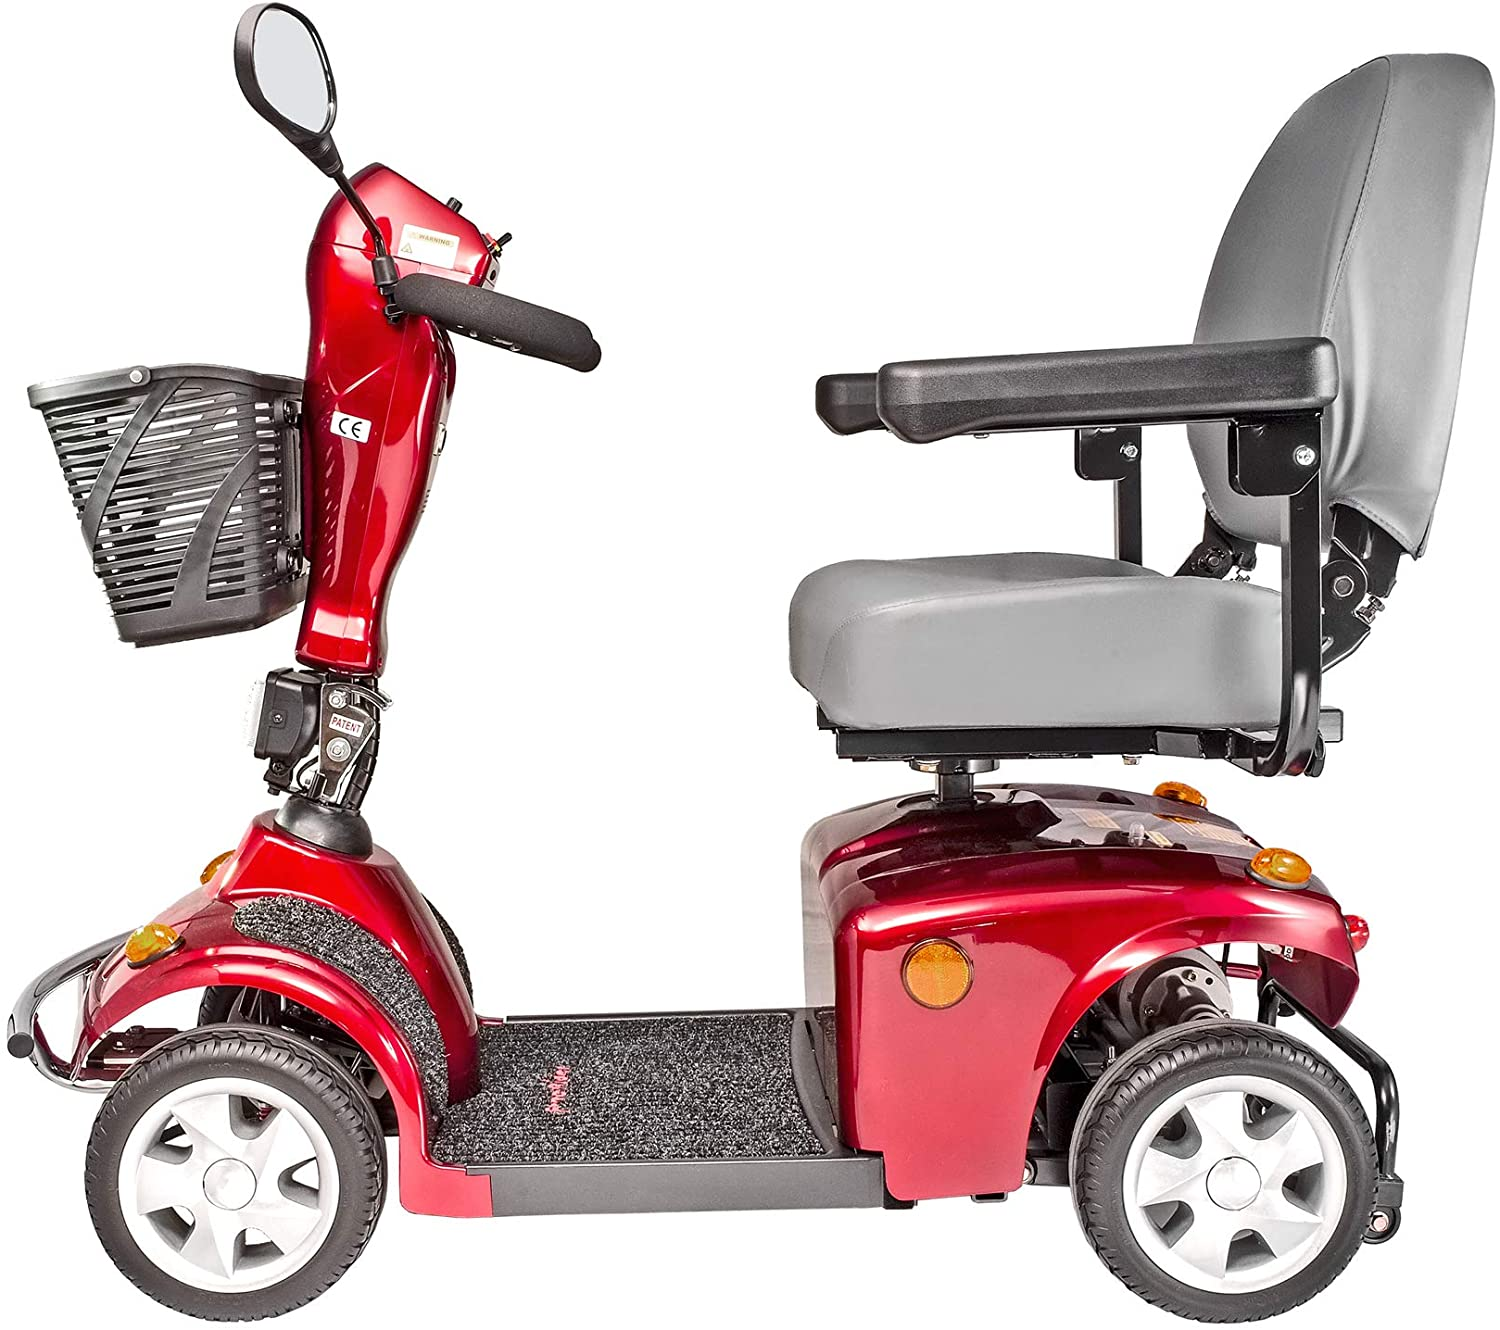 FreeRider FR Superior Edition - 168-4S II Scooter